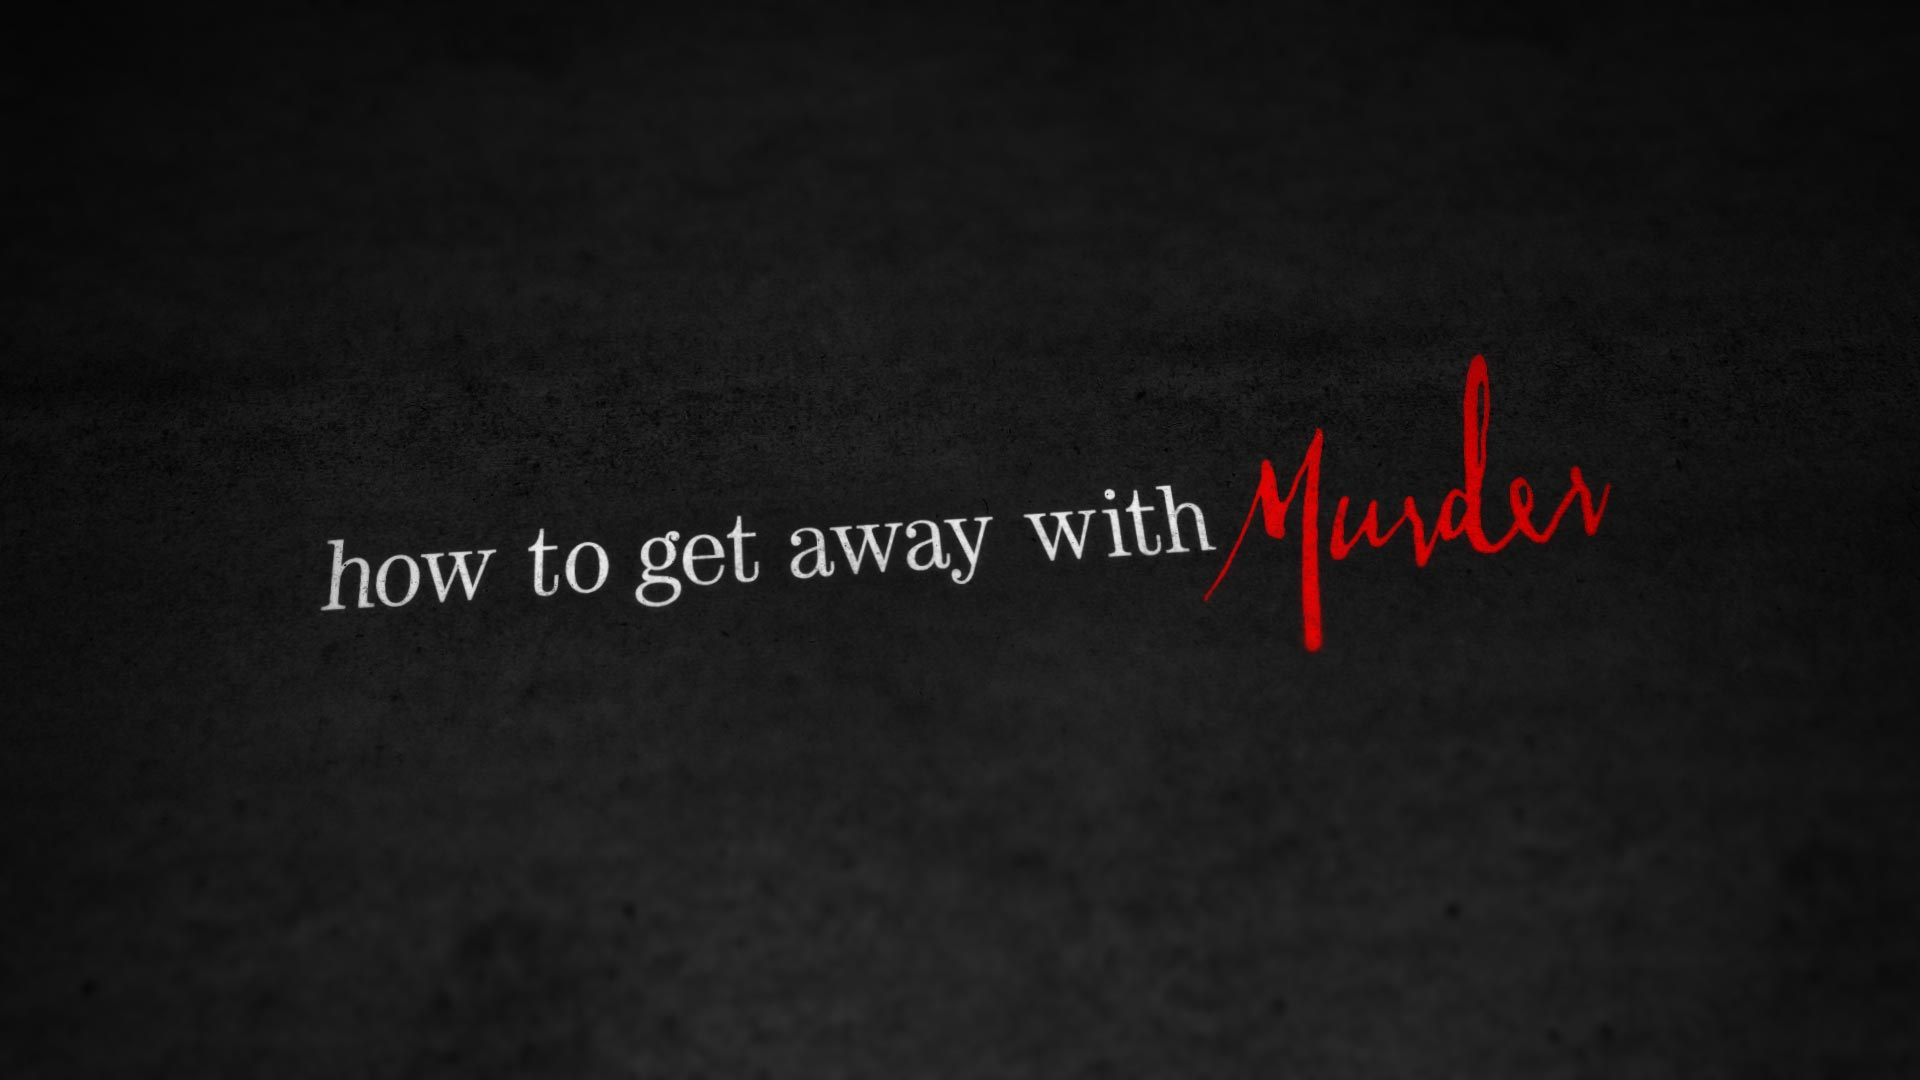 watch how to get away with murder fmovies